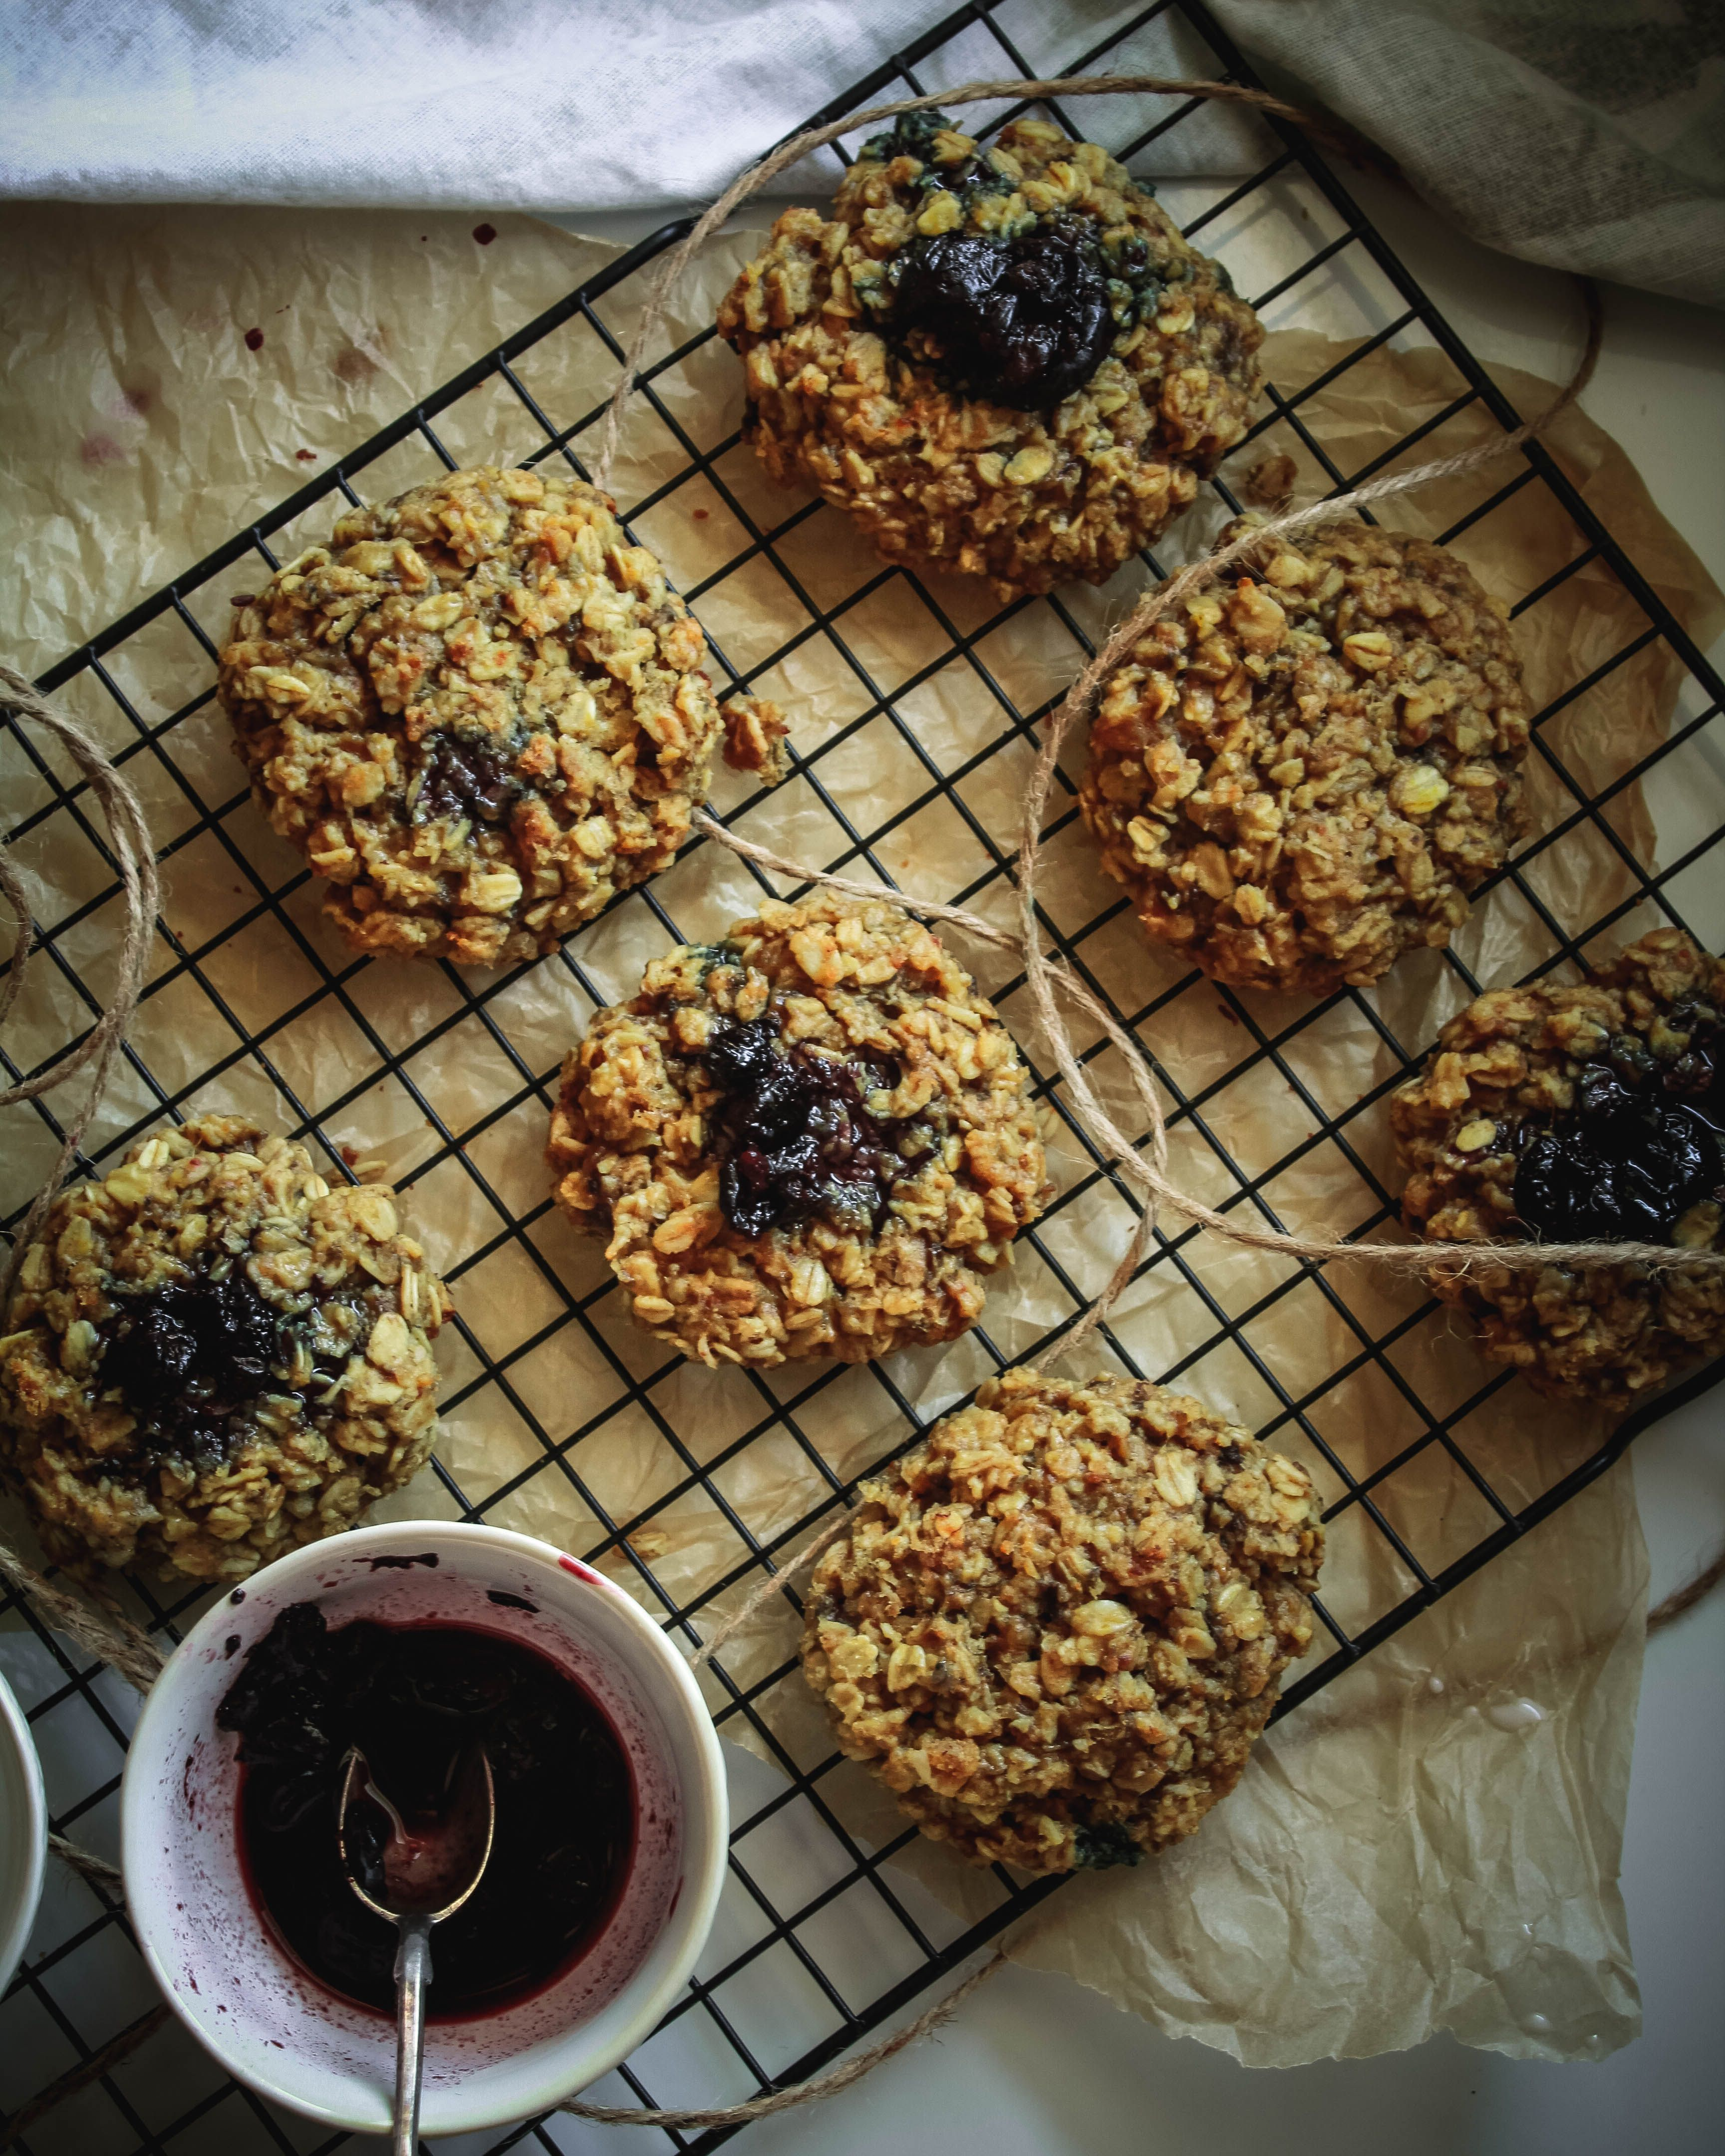 Peanut Butter Jelly Breakfast Cookies